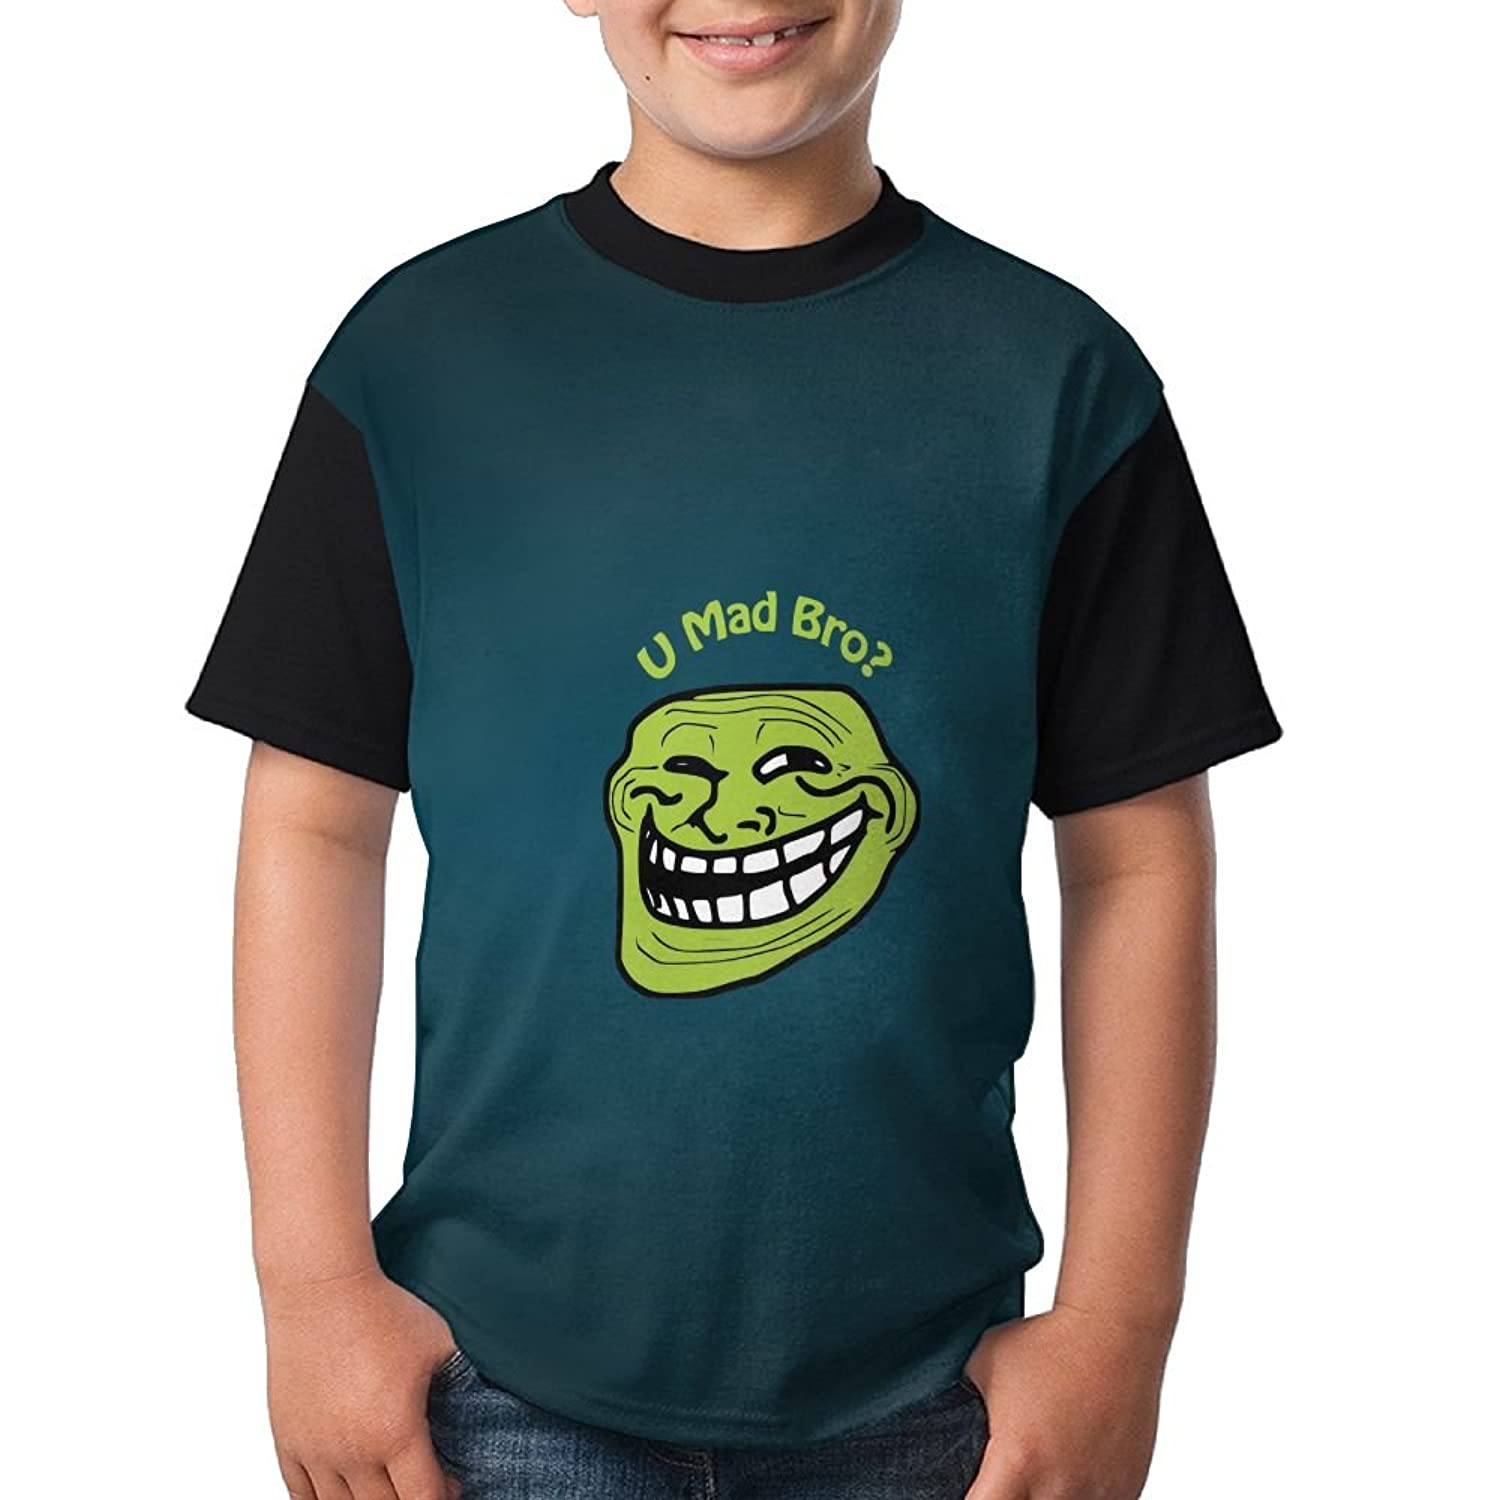 Dnim T Shirts Boys T Shirt Trollface U Mad Bro Hip Hop Black Top